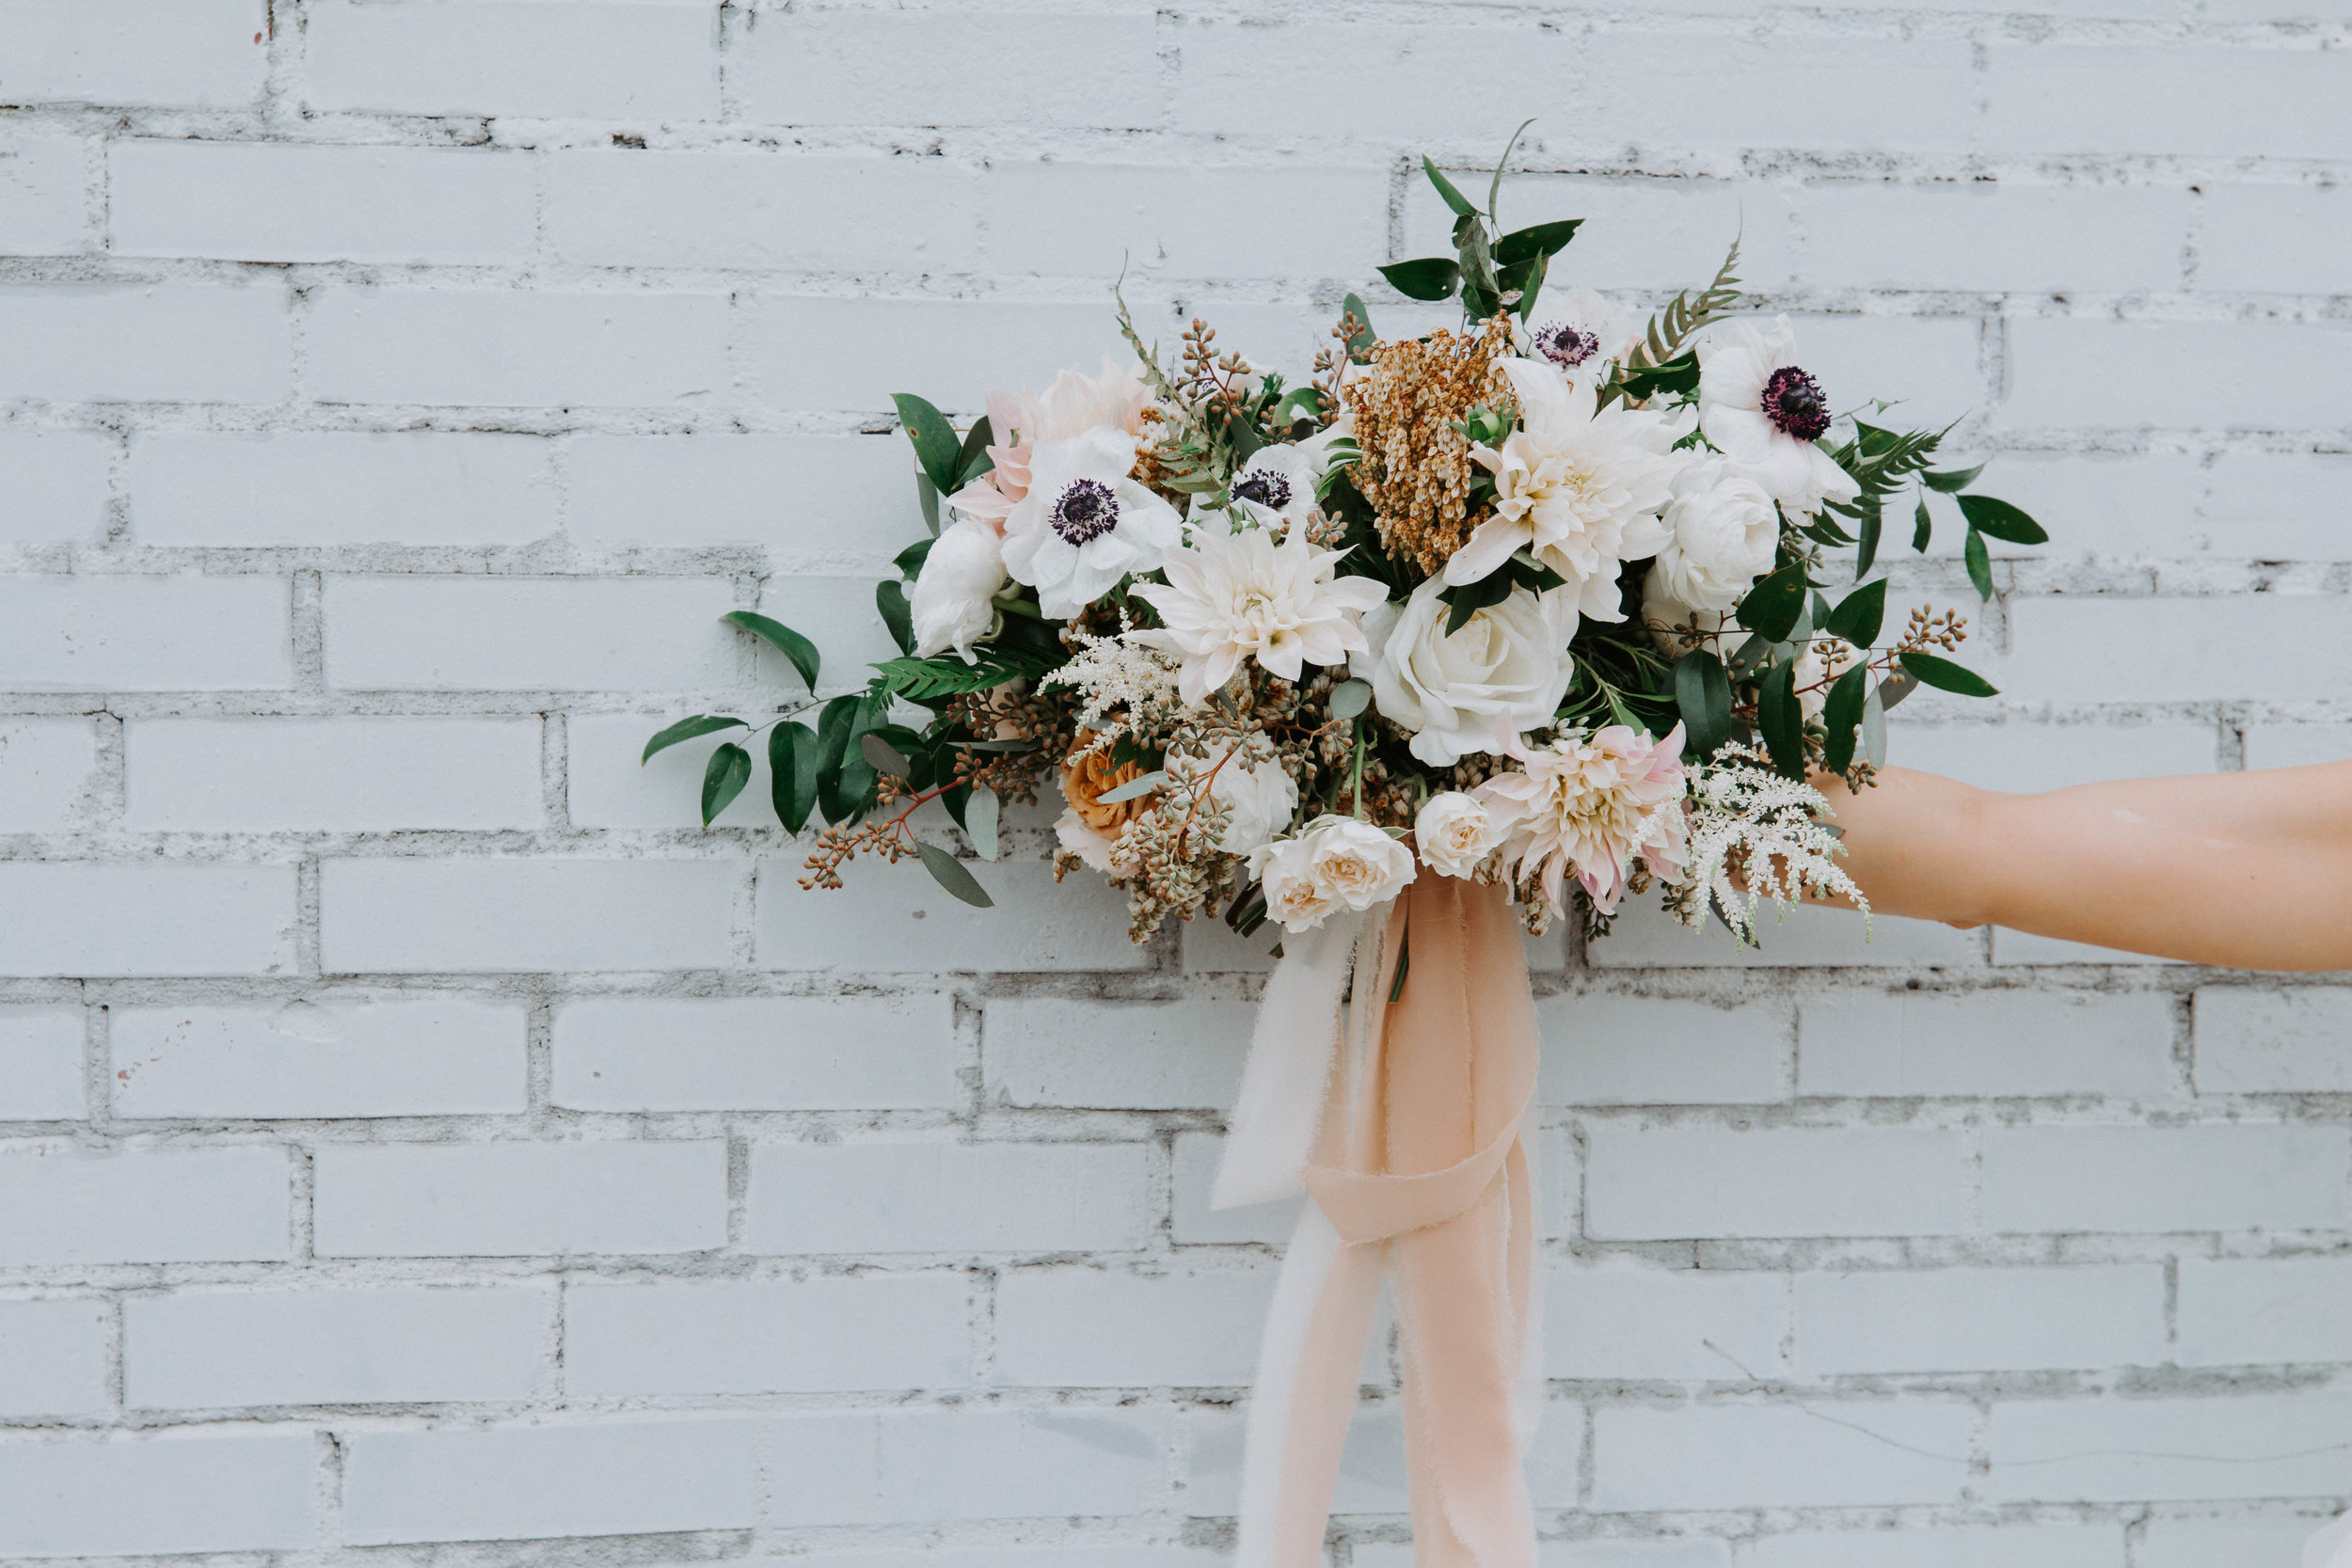 Dylan + Keri - The perfect mix between boho and modern. Keri + Dylan celebrate at The Glass Factory in Jacksonville, Florida.